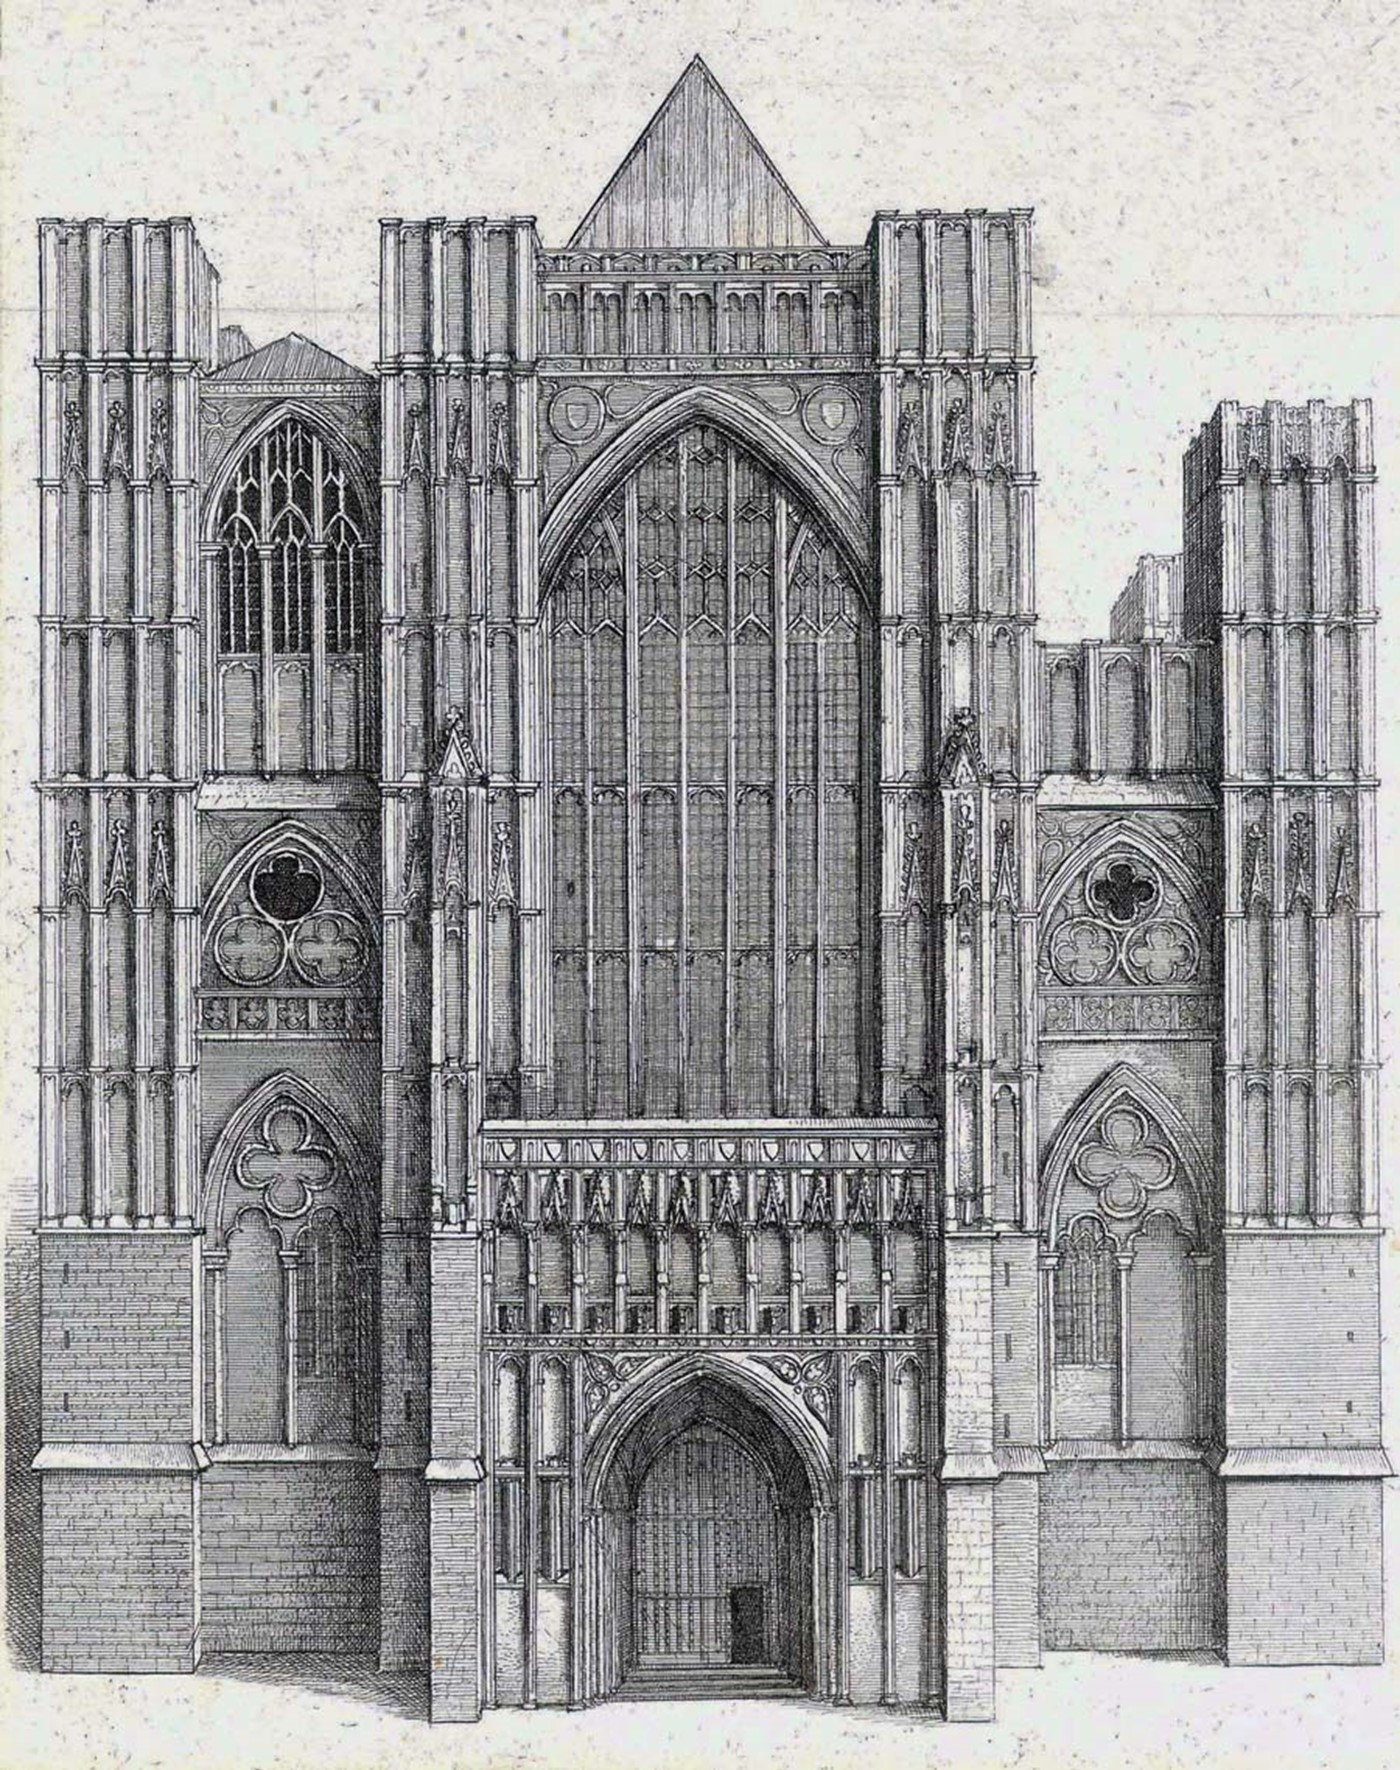 West towers unfinished, Hollar 1650s 300.jpg